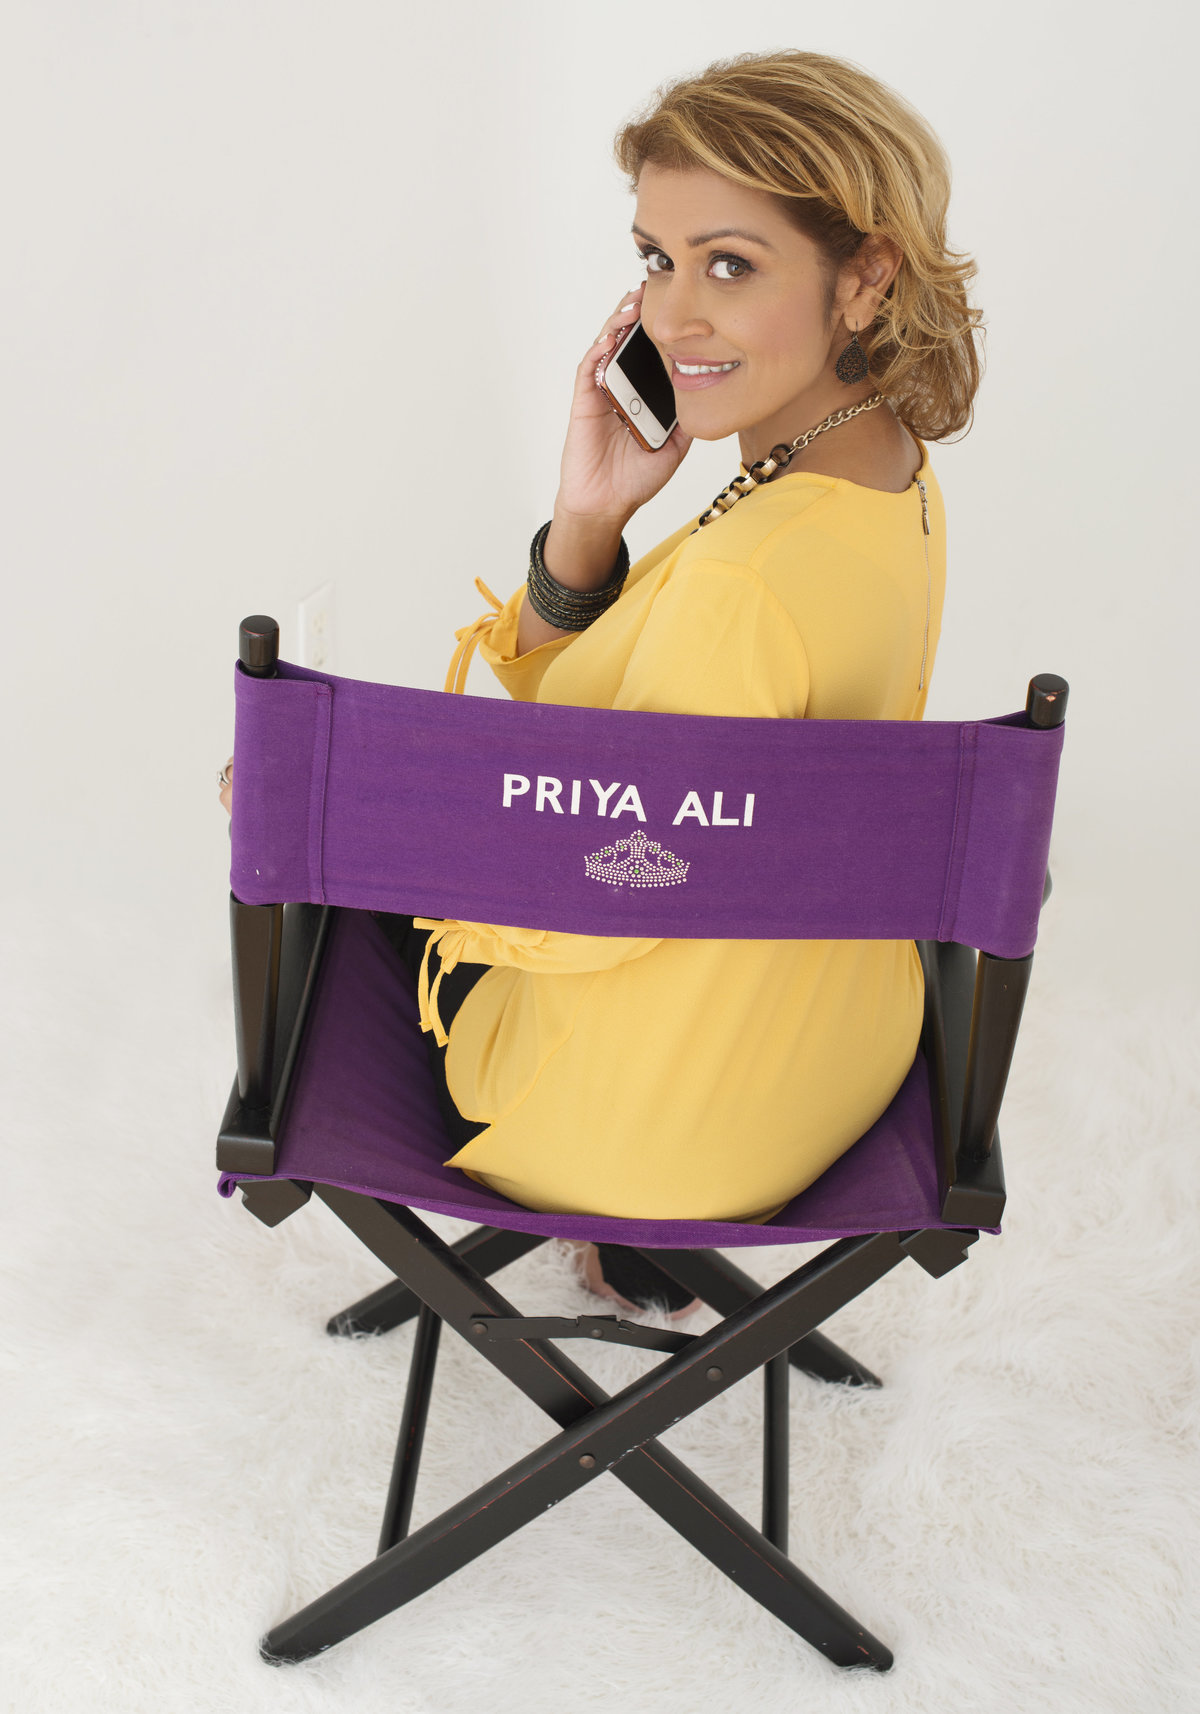 business brand photography of  film  director sitting on her chair talking on her phone and  smiling  photo